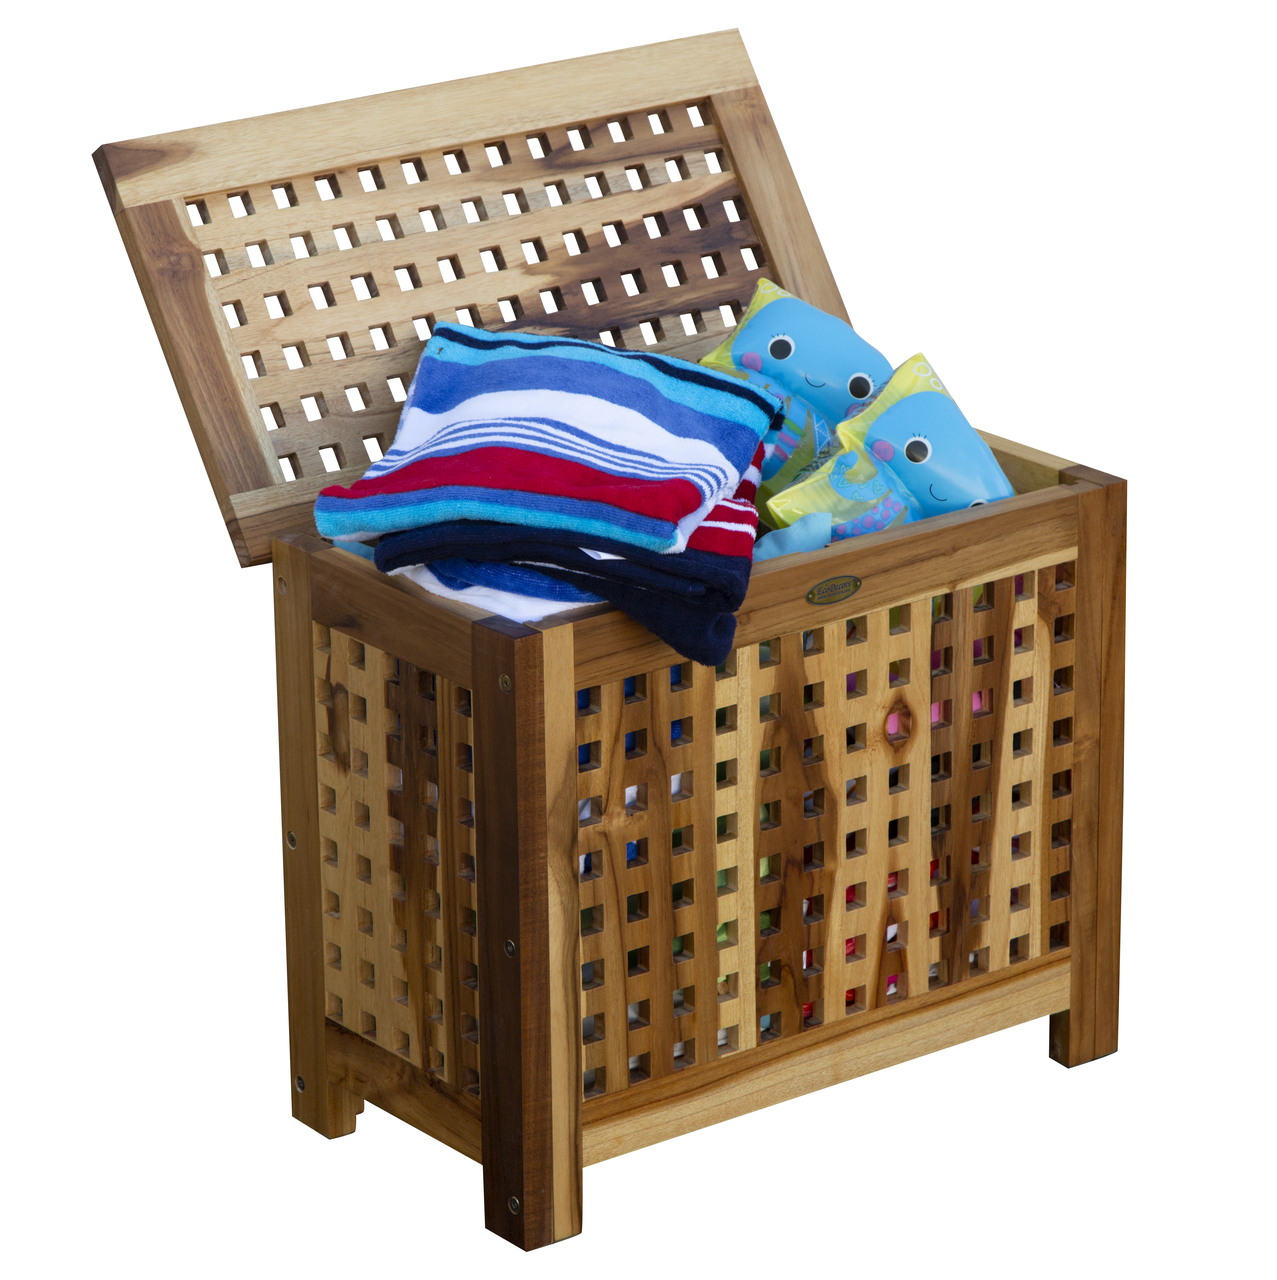 Wondrous Solid Lattice Bench Teak Hamper With Laundry Bag Creativecarmelina Interior Chair Design Creativecarmelinacom